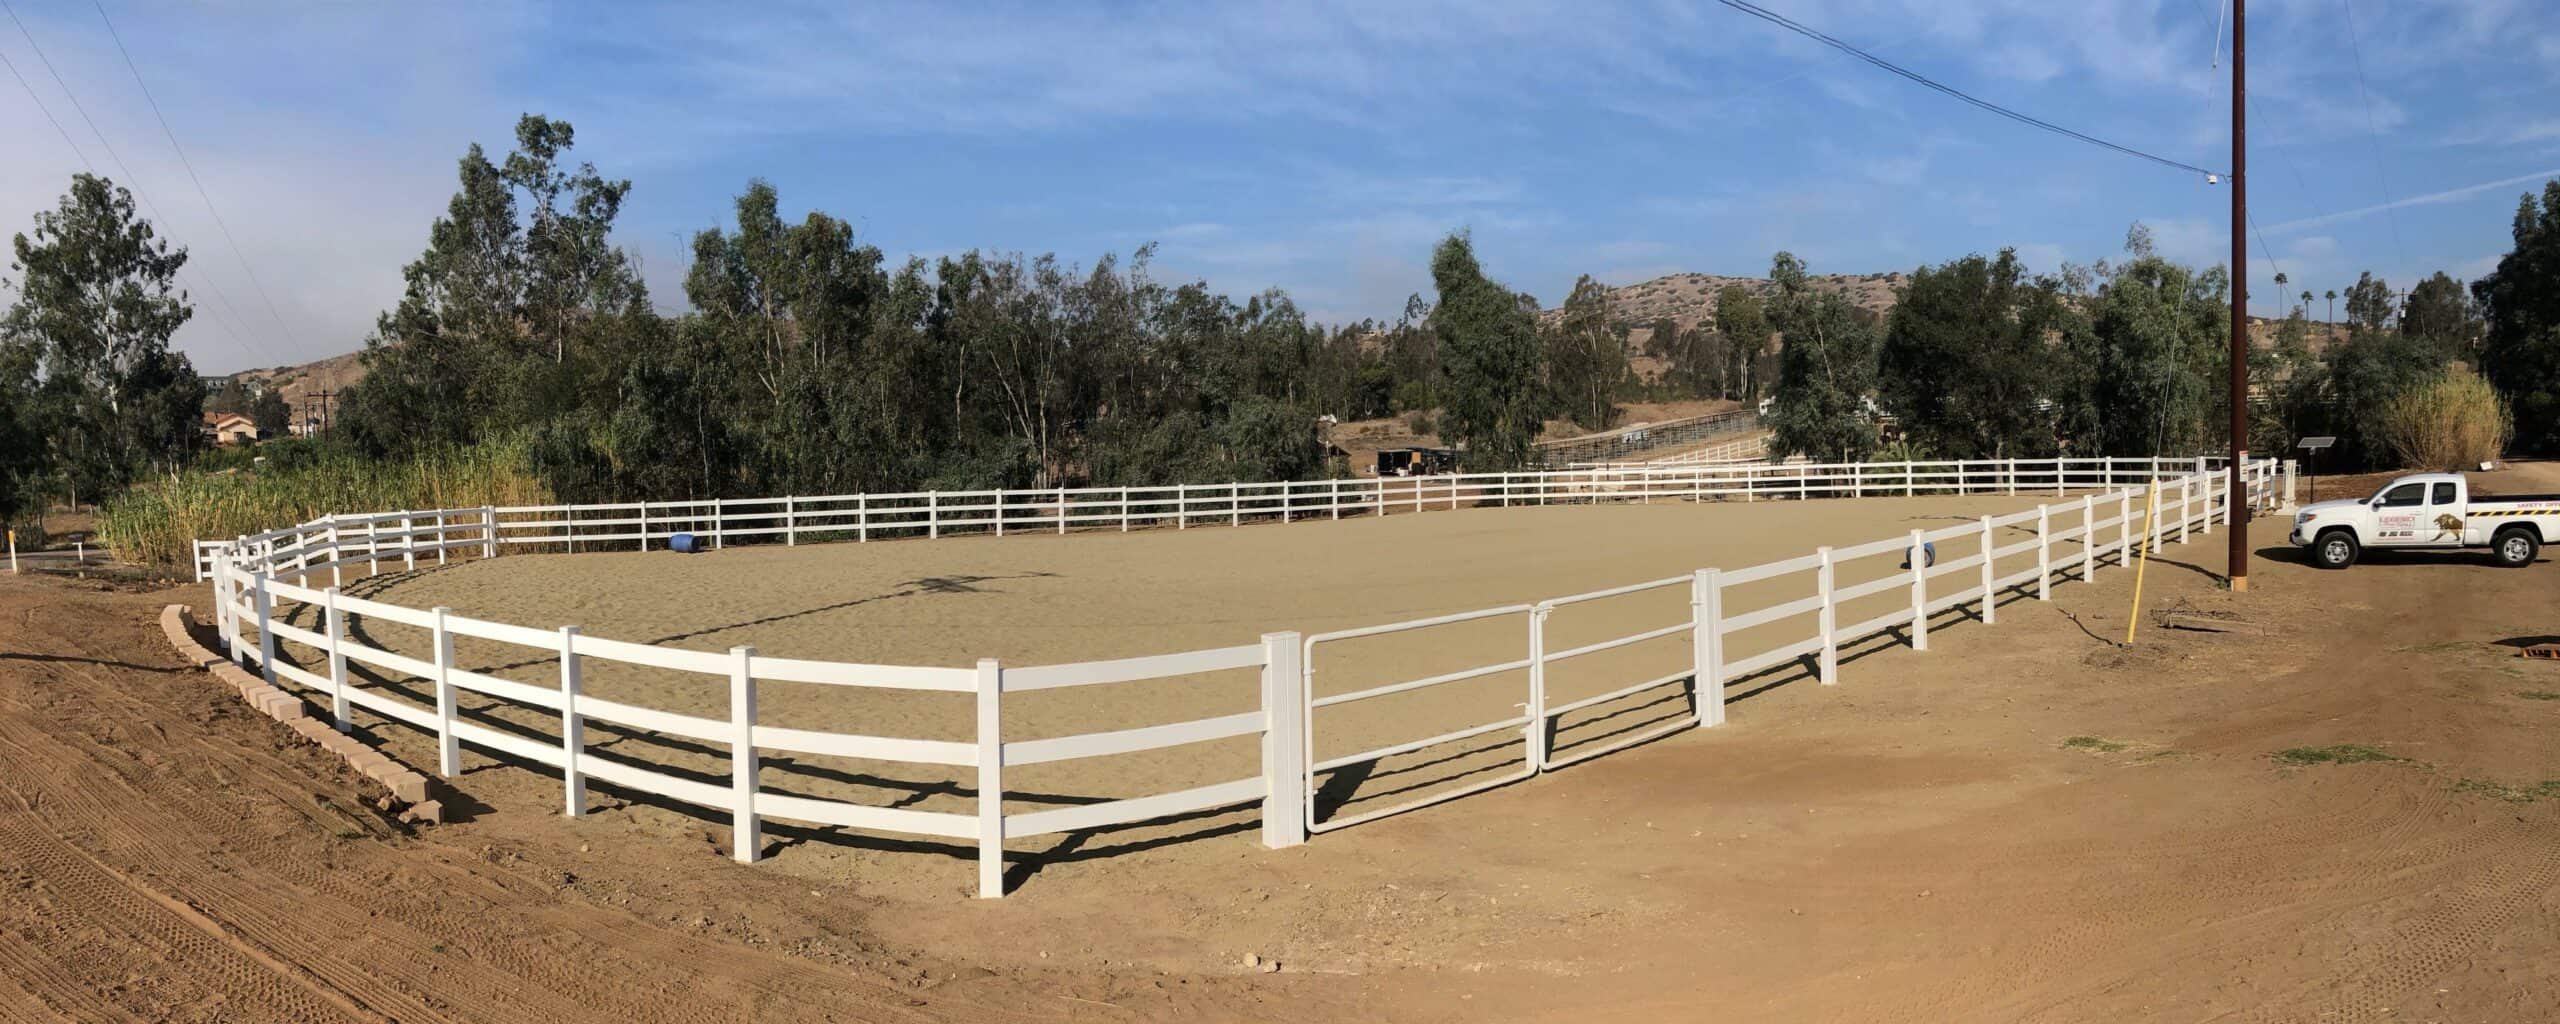 """5' High Vinyl Ranch Fence job in Escondido for Phil BBQ's """"Resque Ranch"""" located in Escondido"""